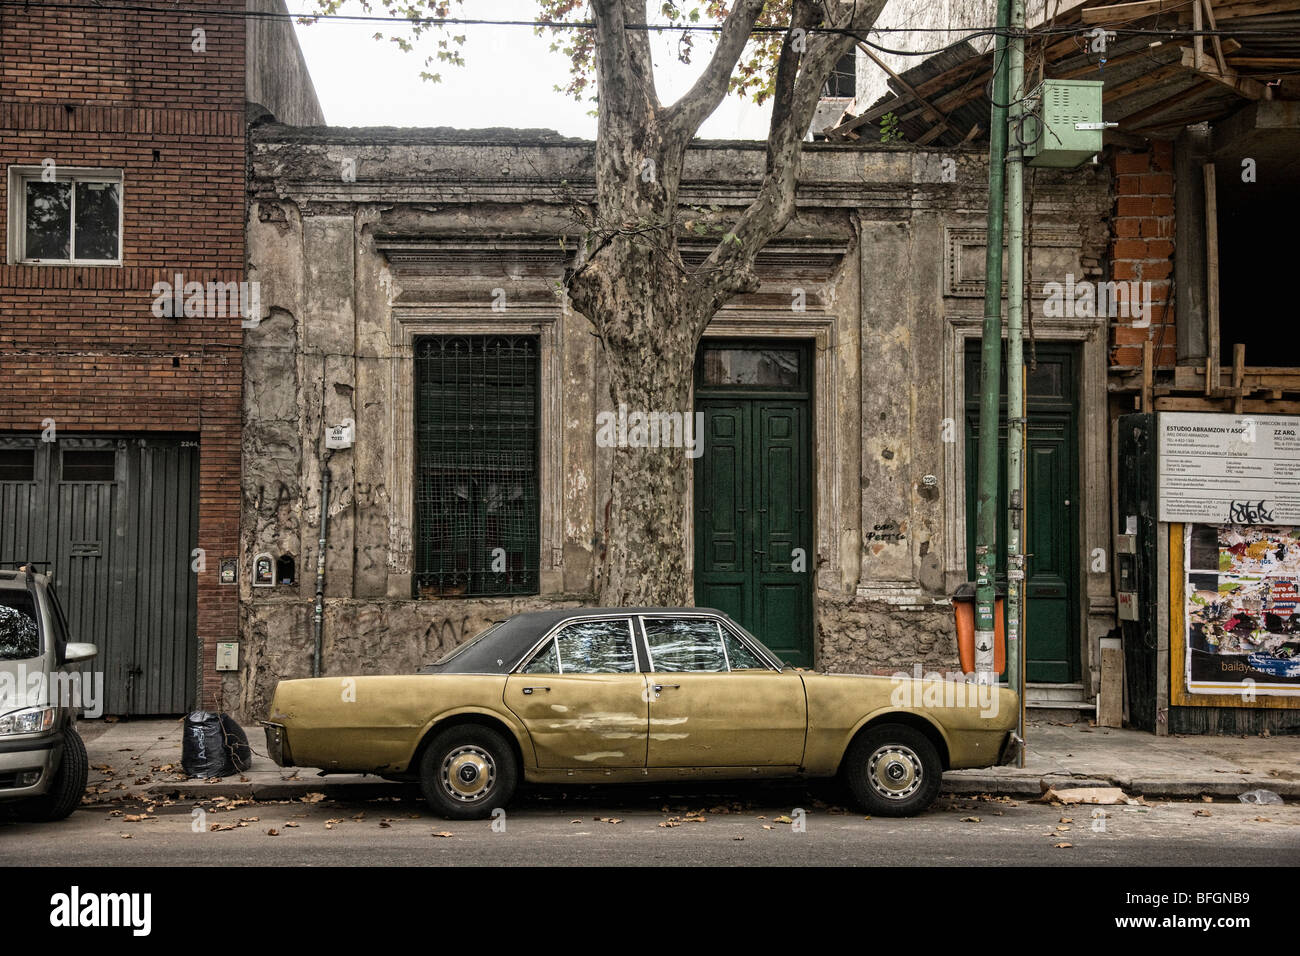 Old car parked in front of decrepit building, Buenos Aires, Argentina - Stock Image